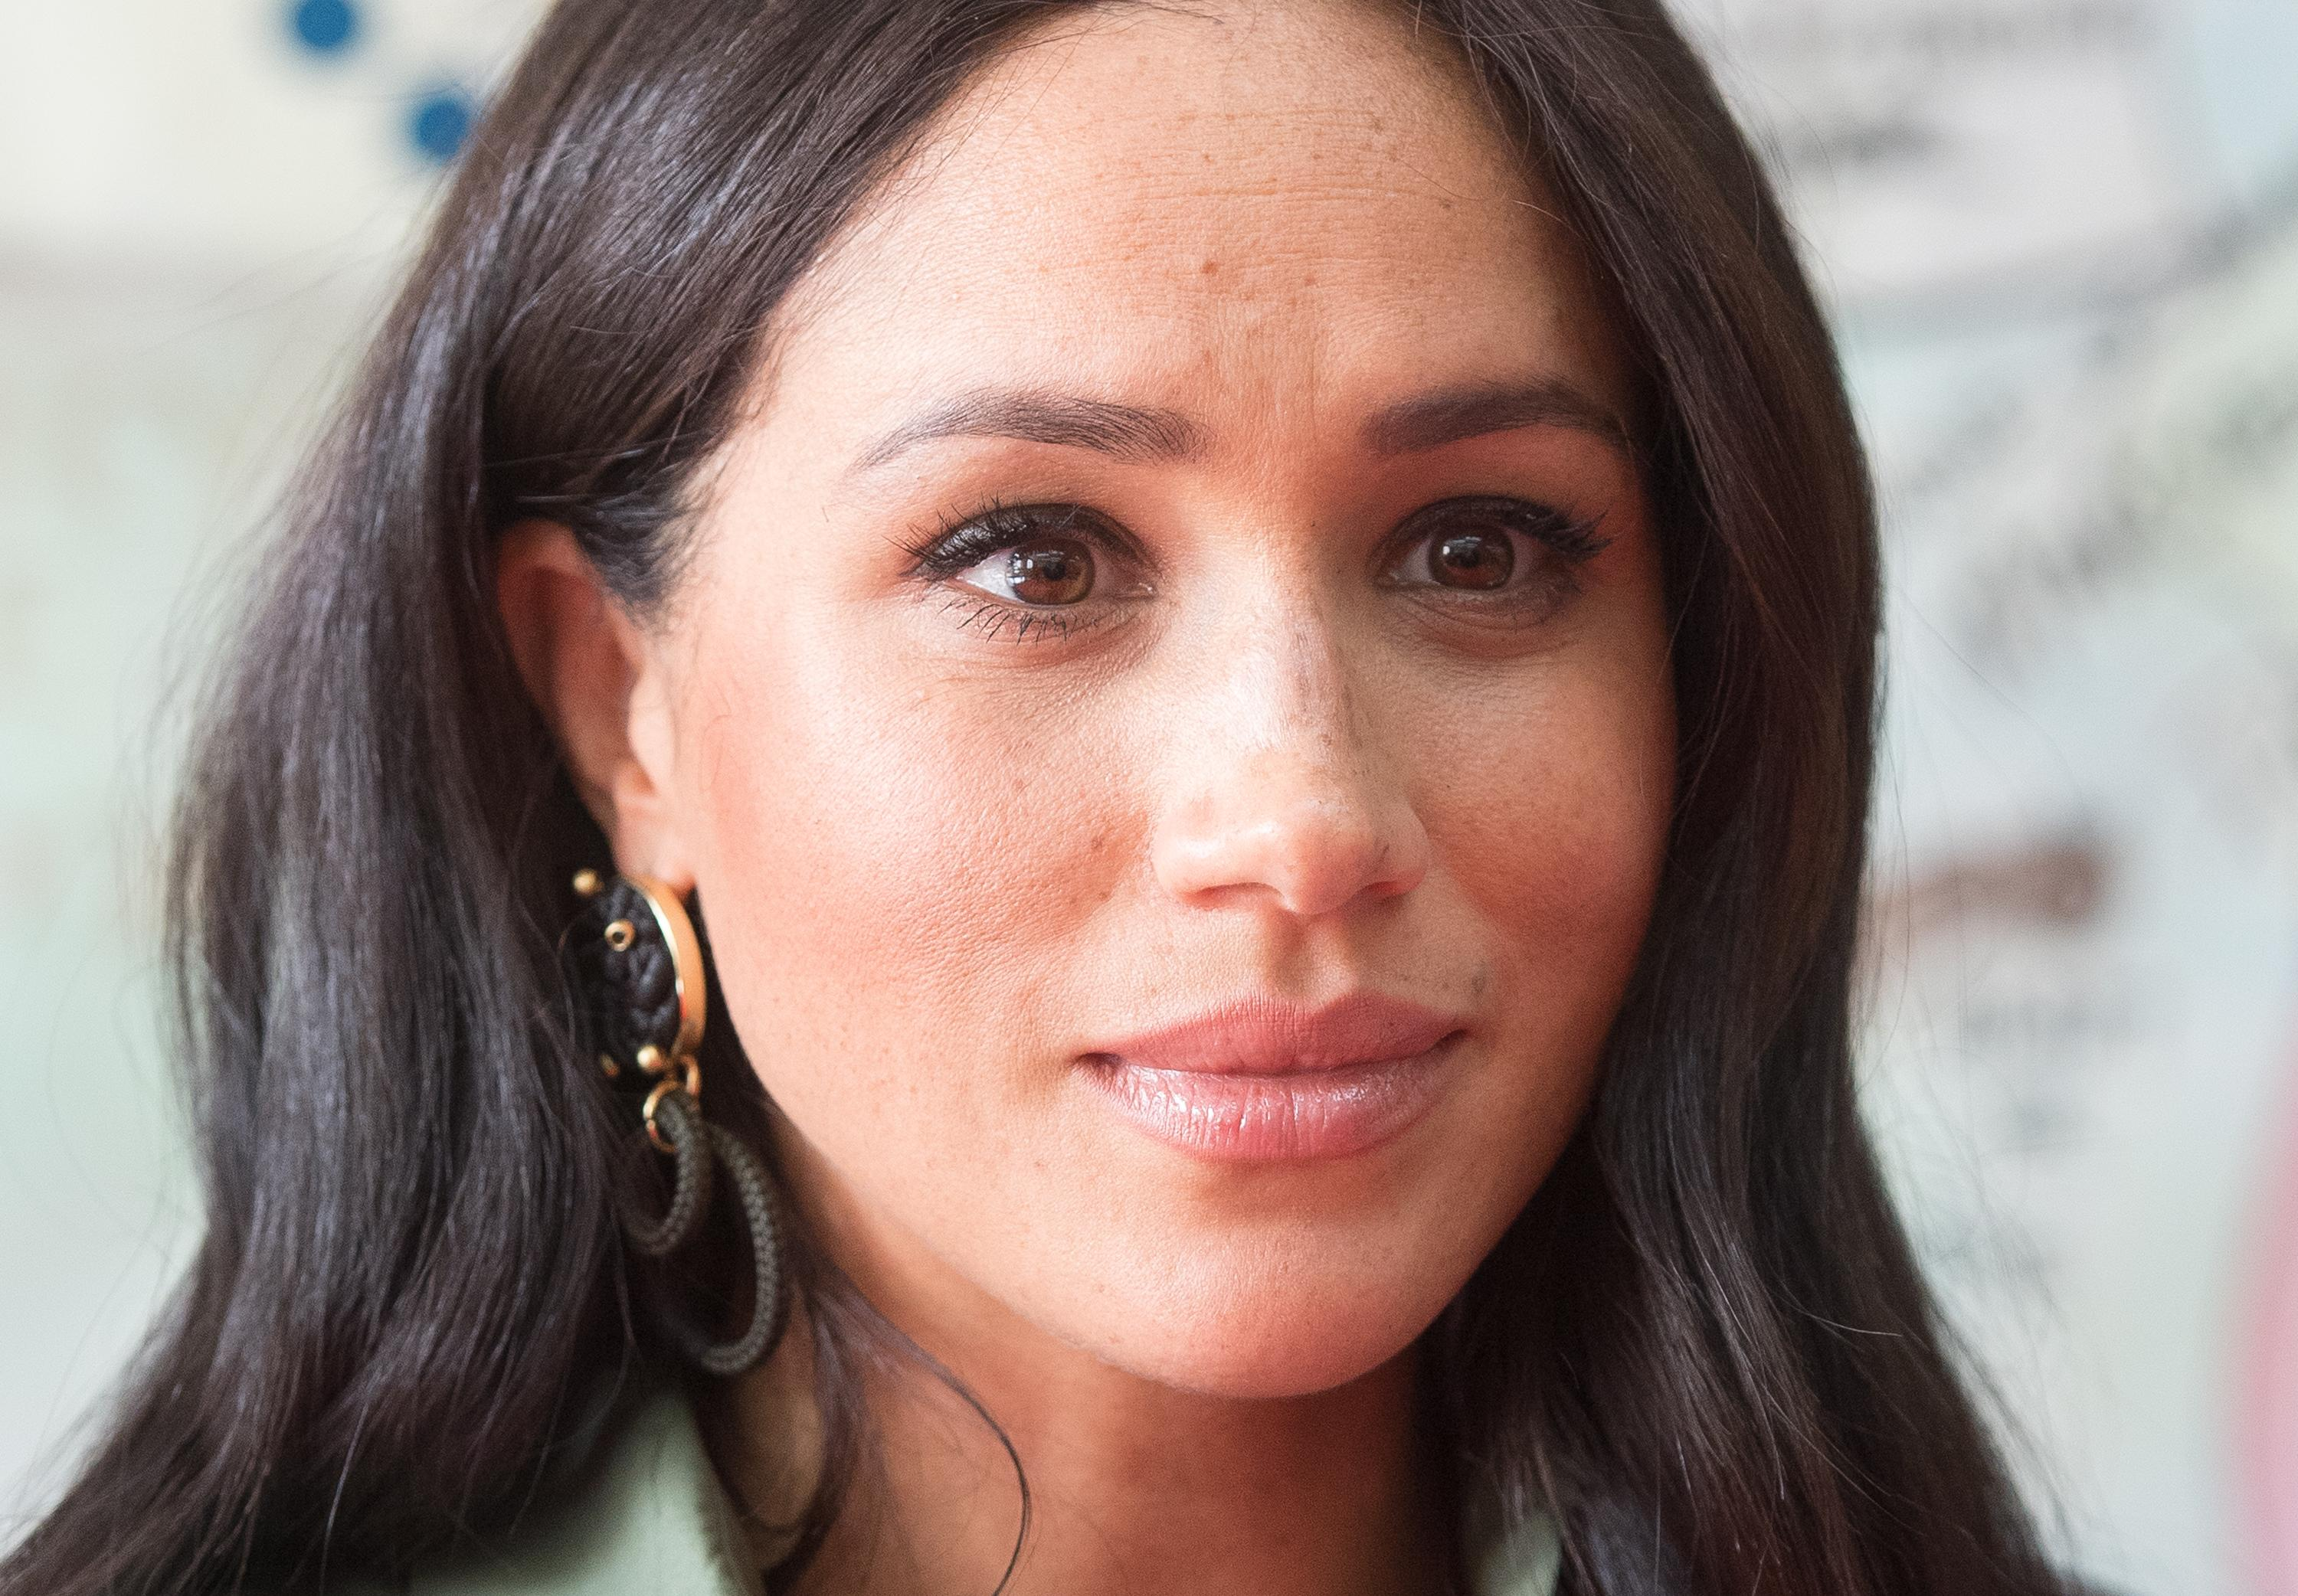 Meghan Markle opens up about 'struggle' of being a new mom: 'Not many people have asked if I'm OK'